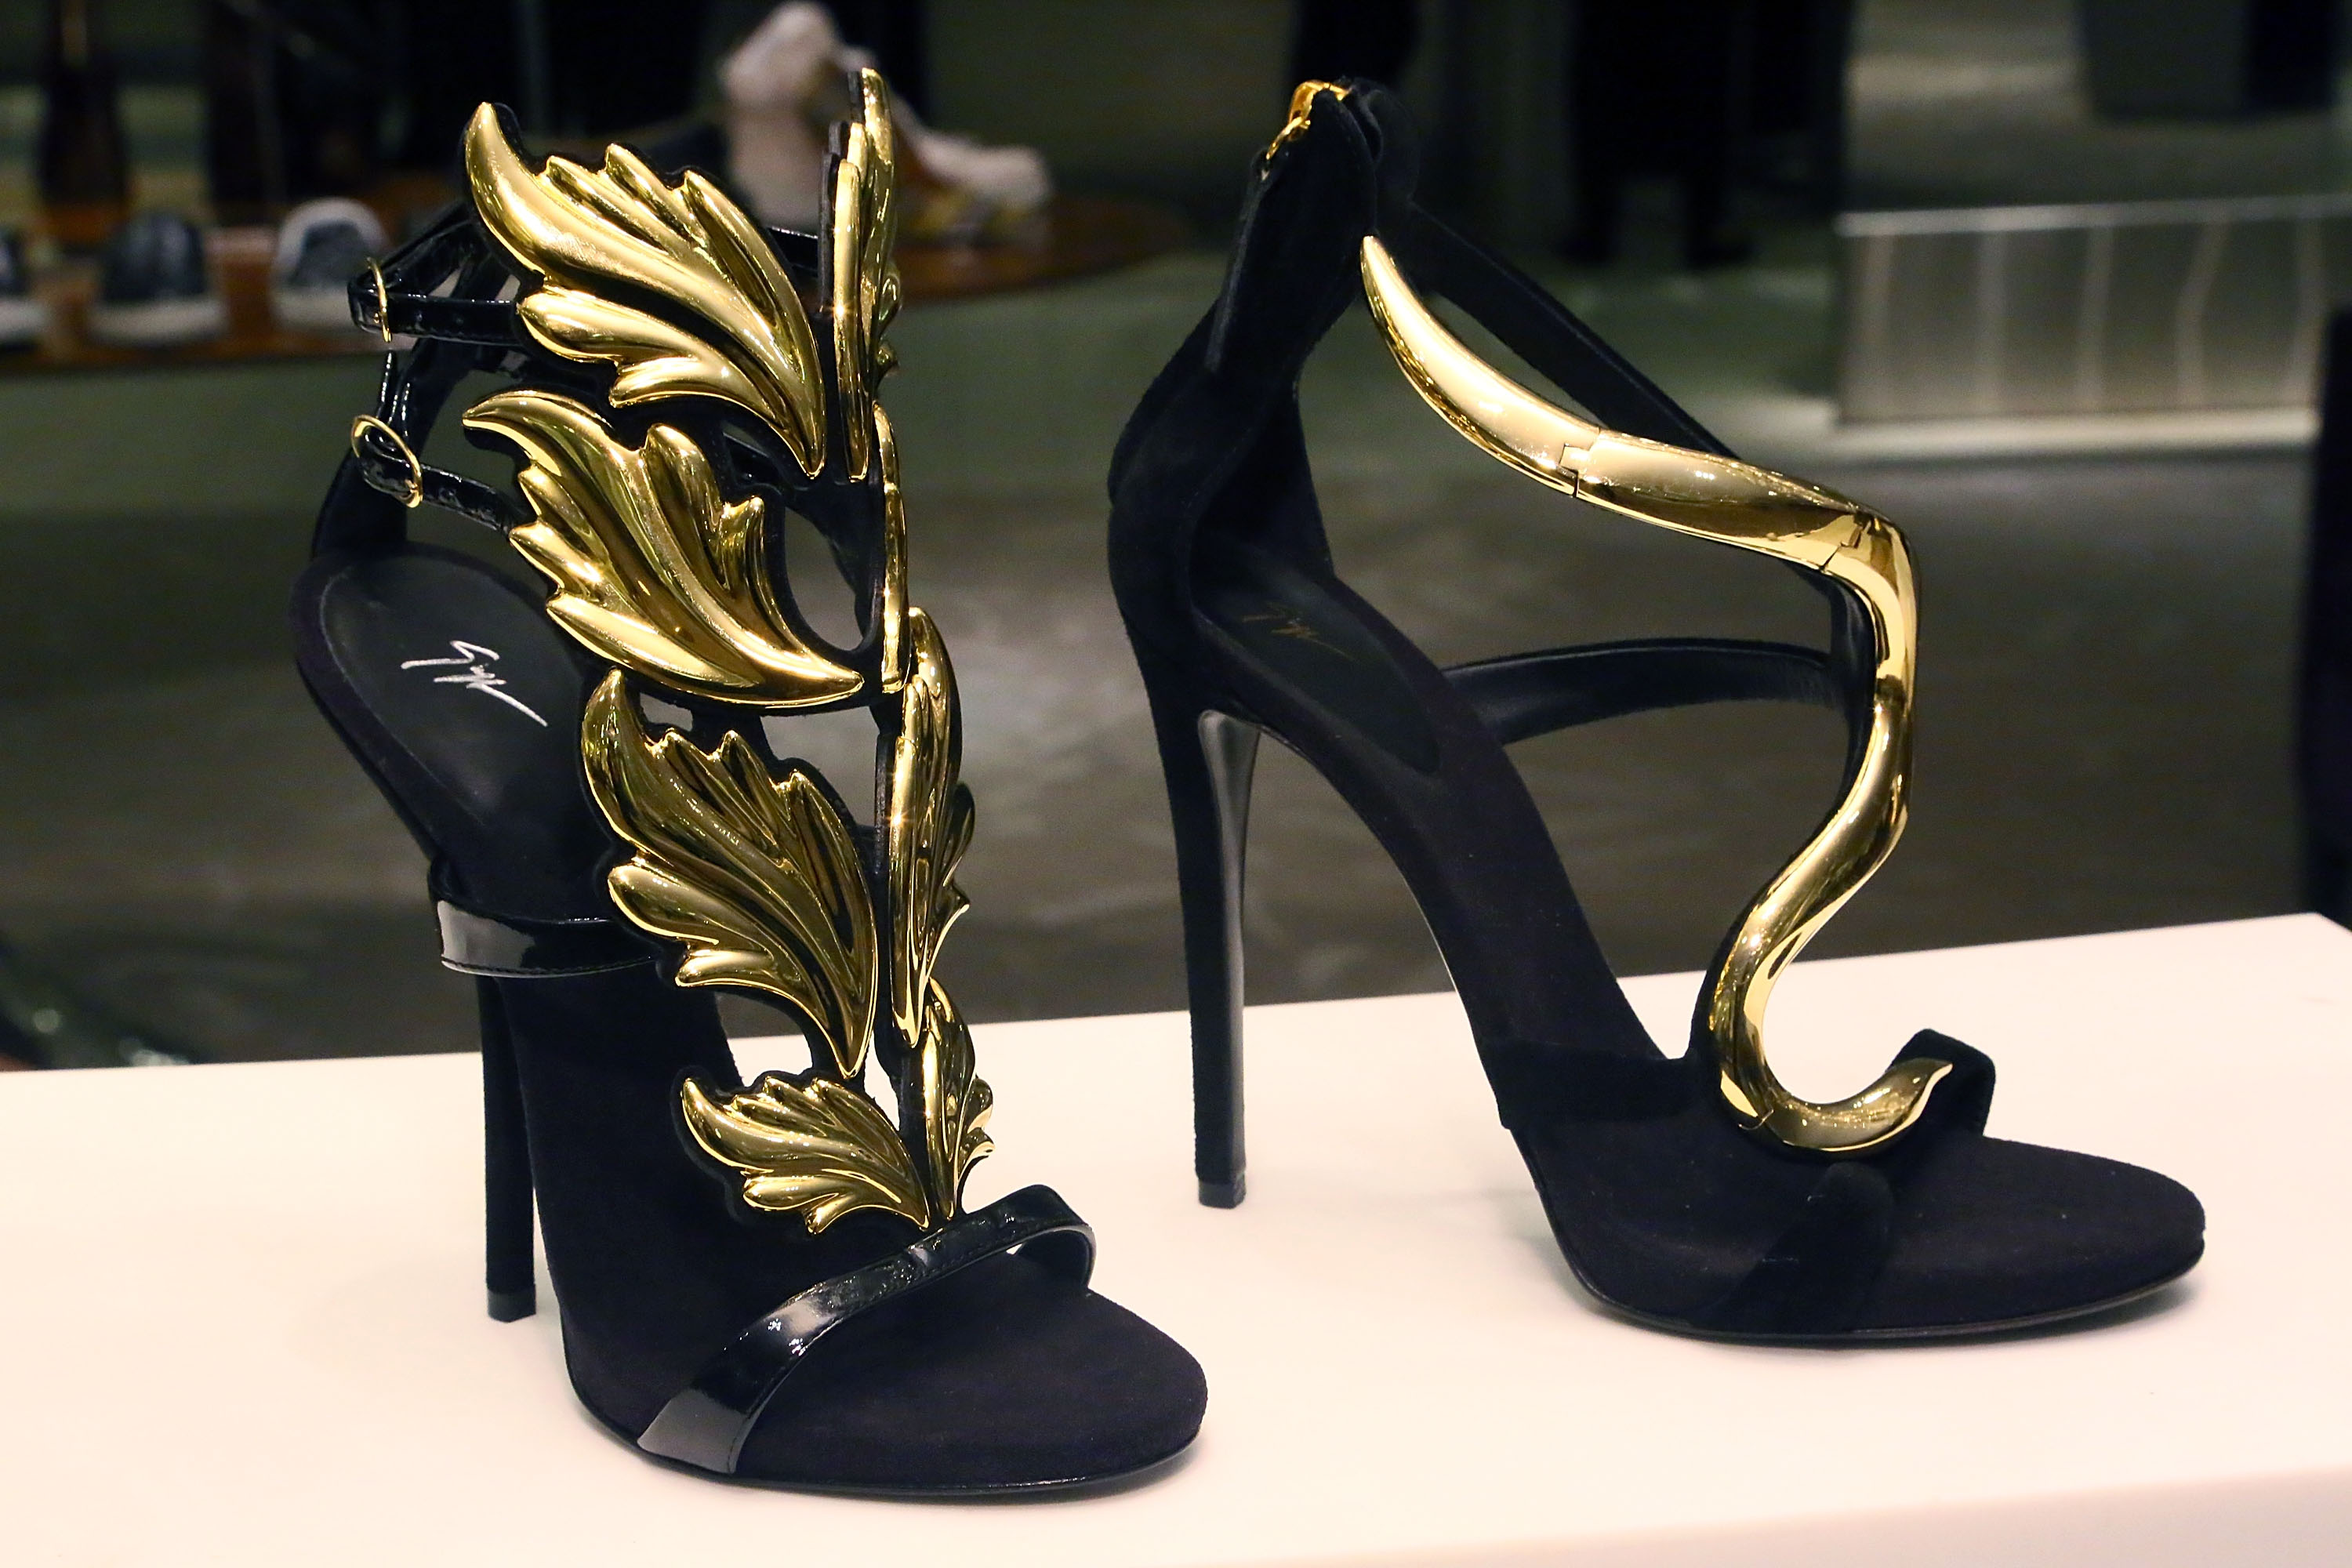 giuseppe zanotti heels are displayed during marie claires shoes first shopping event at saks fifth avenue